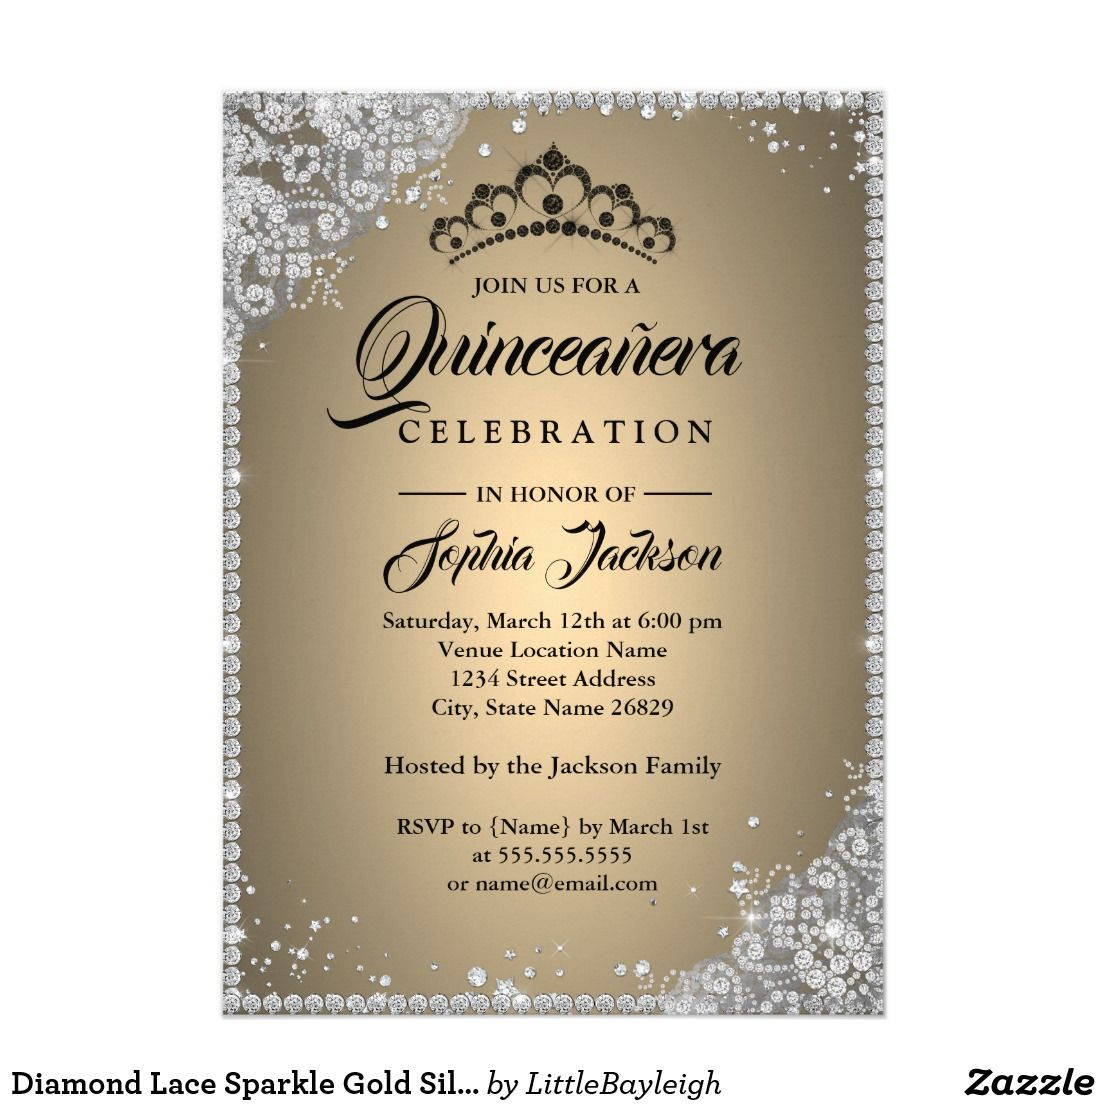 Diamond Lace Sparkle Gold Silver Quinceanera Invitation